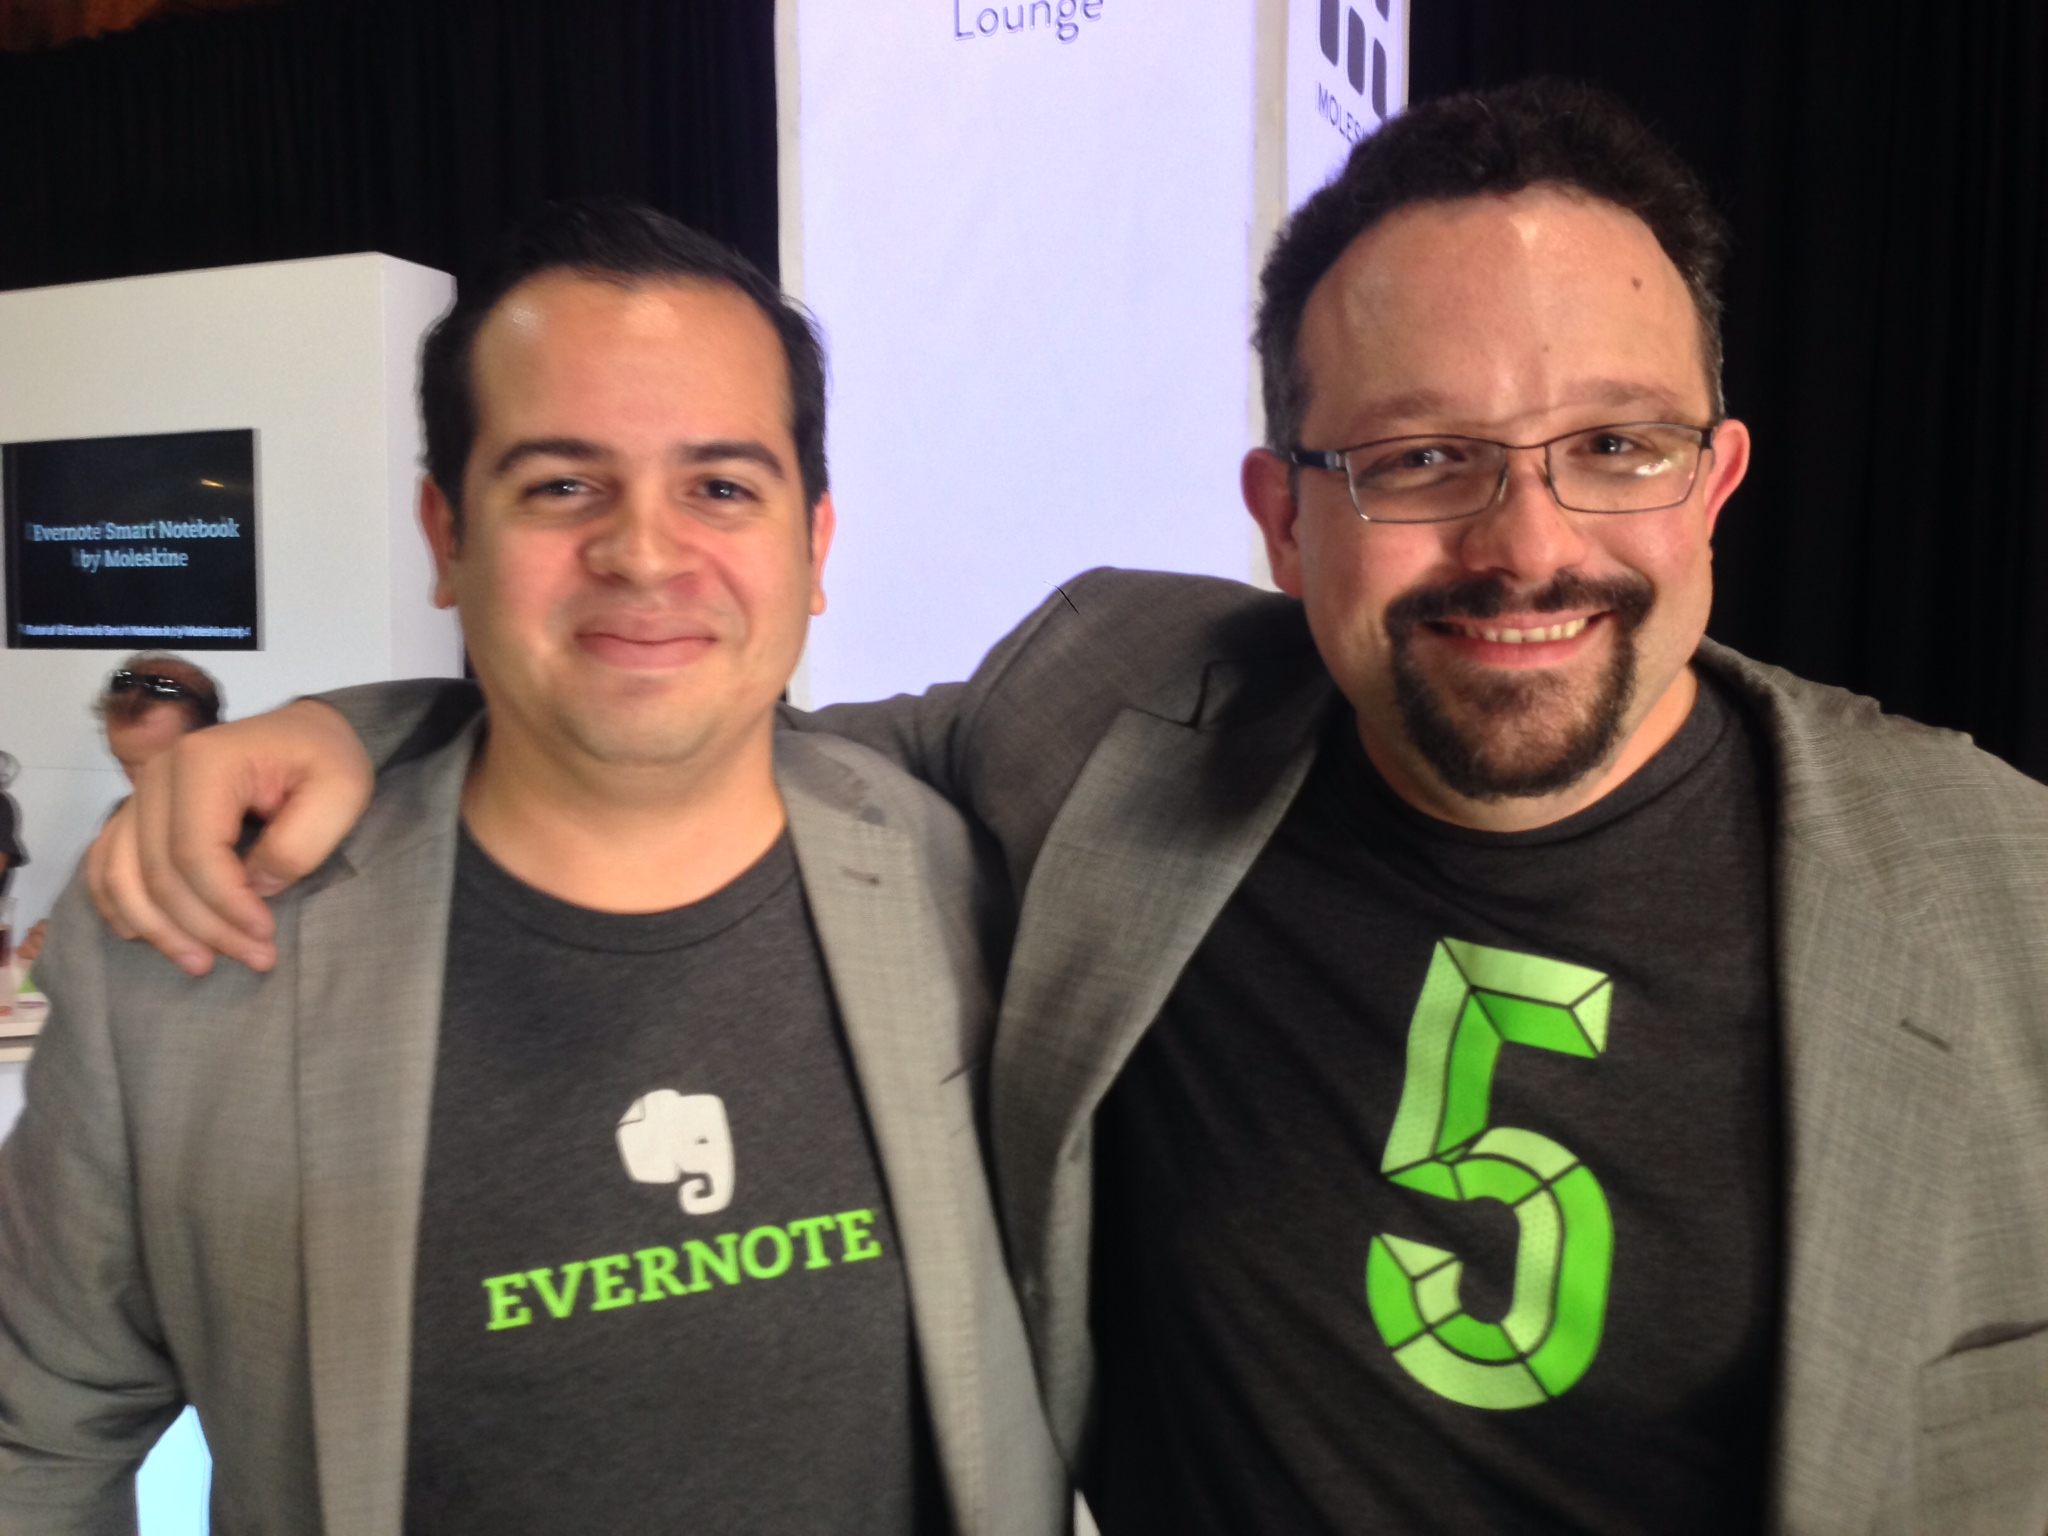 Rui Delgado and Phil Libin, then CEO of Evernote.